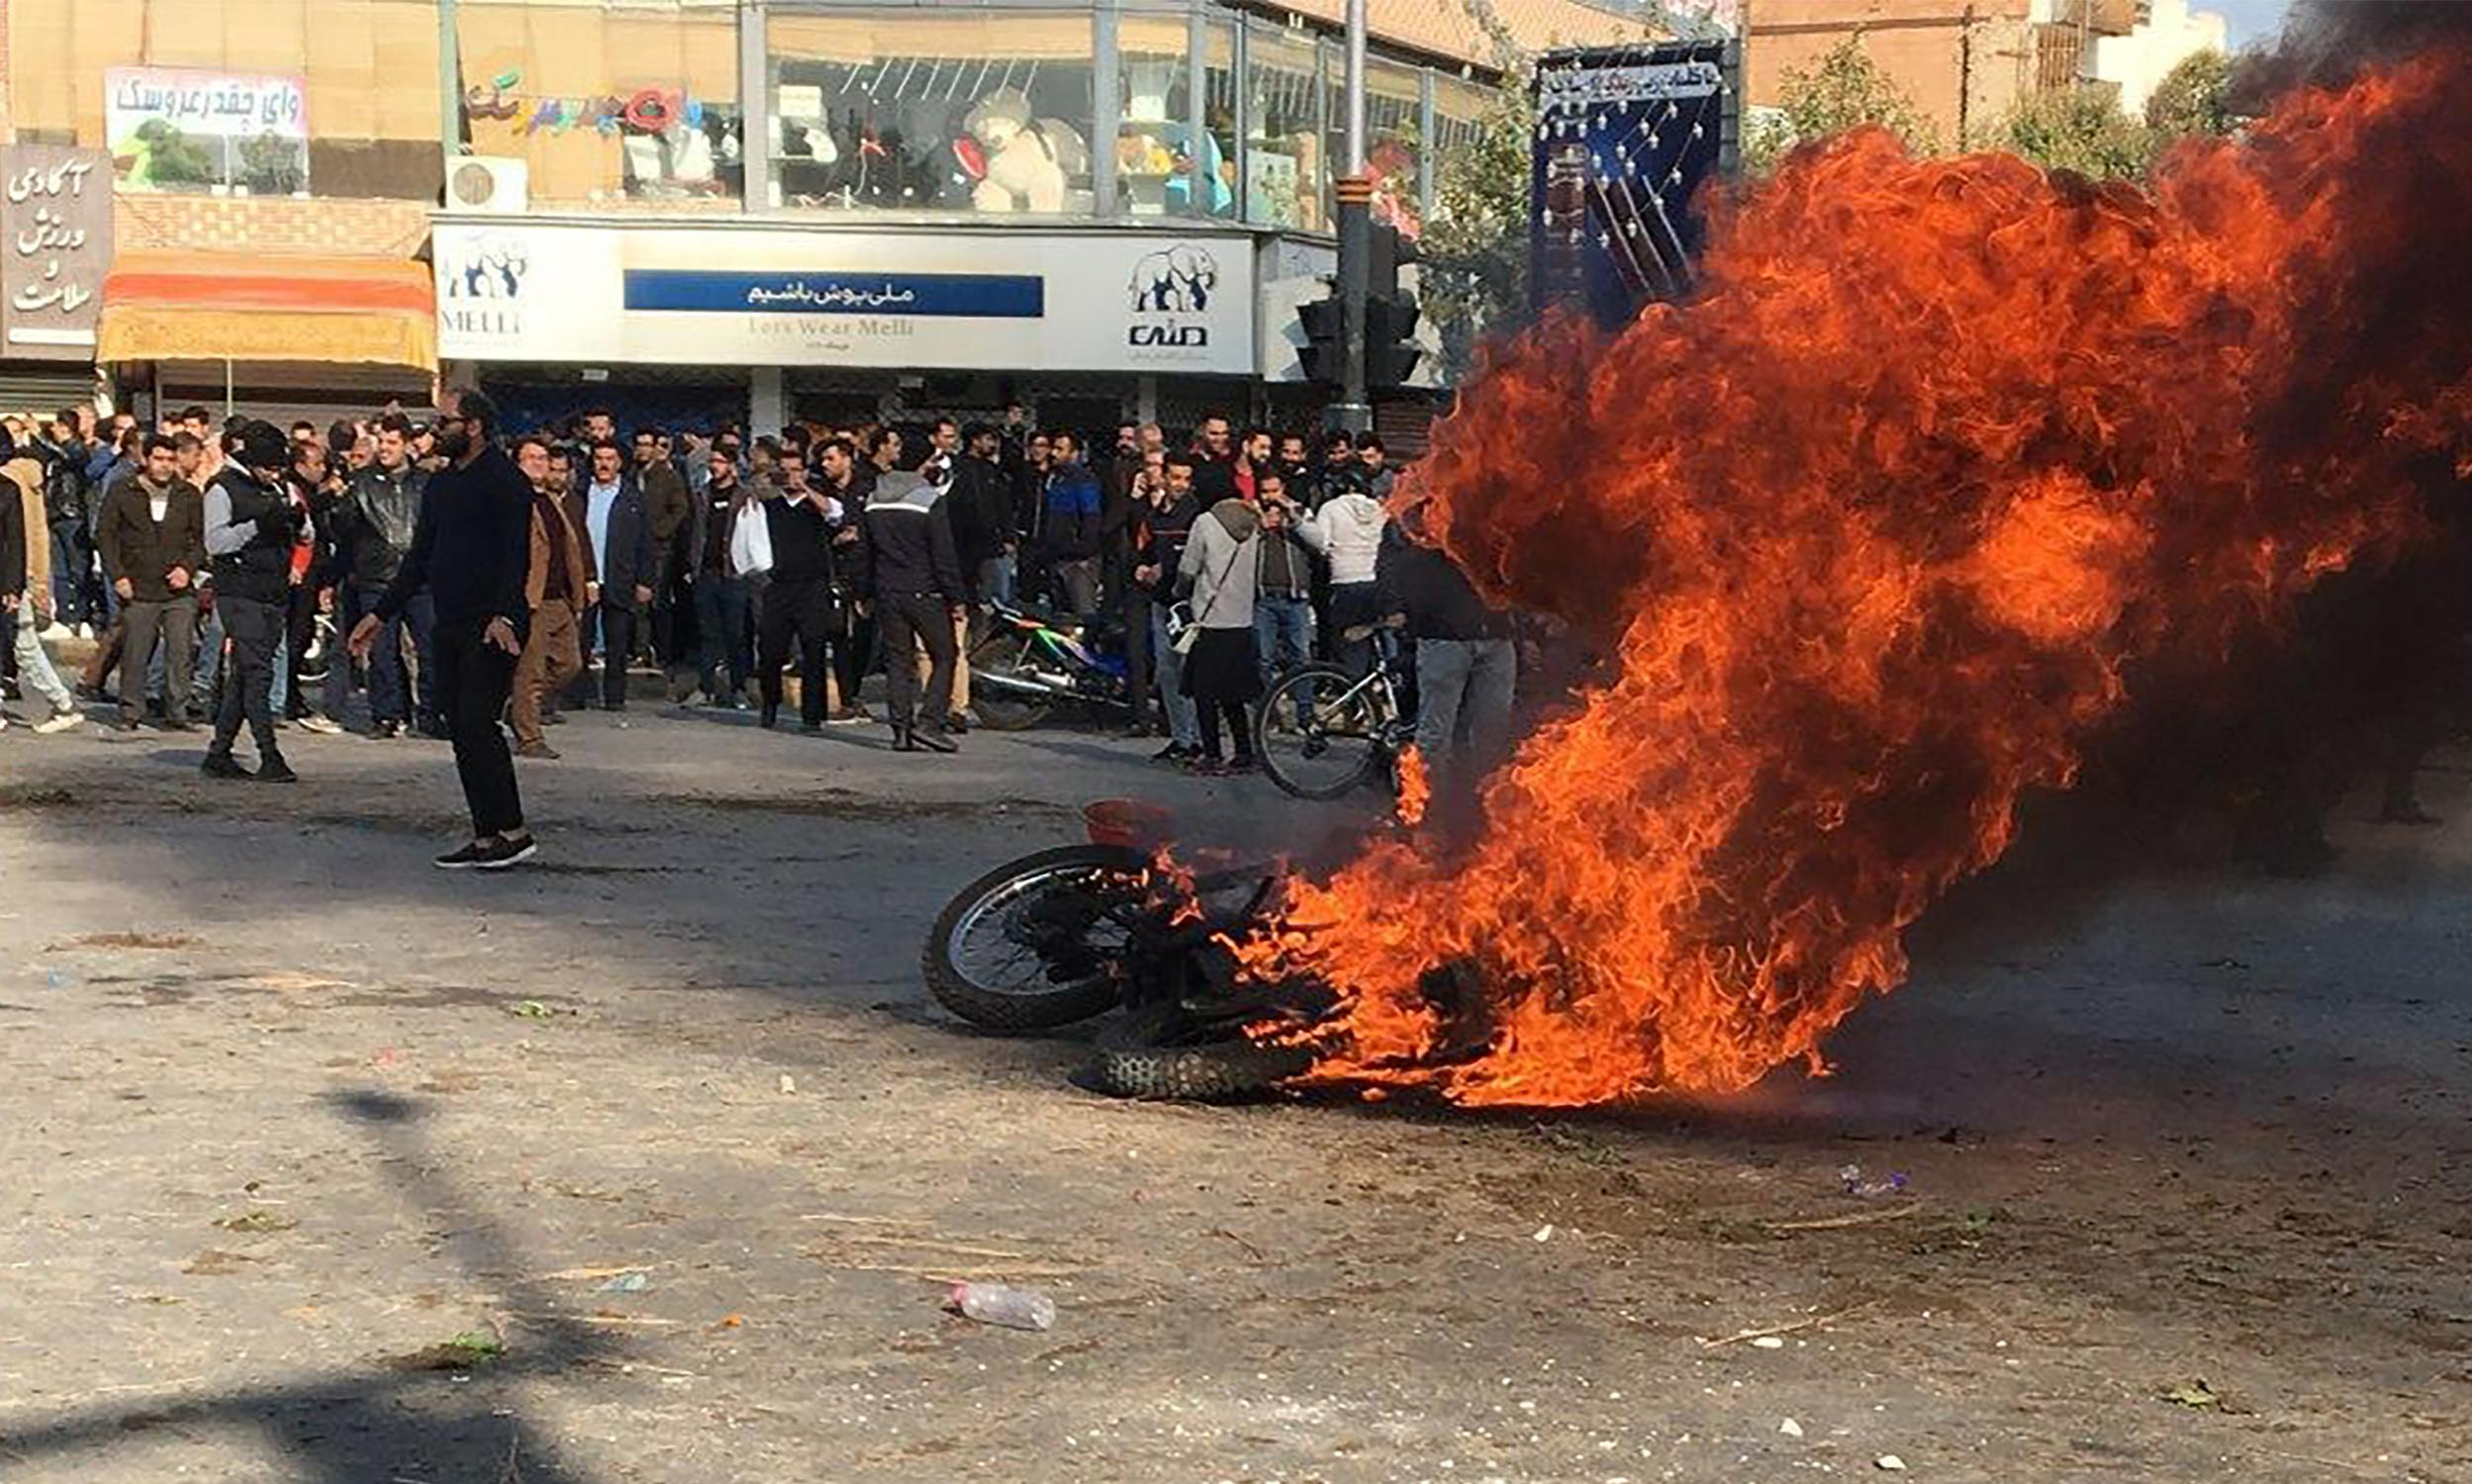 Iran supreme leader backs petrol price rises as protests spread